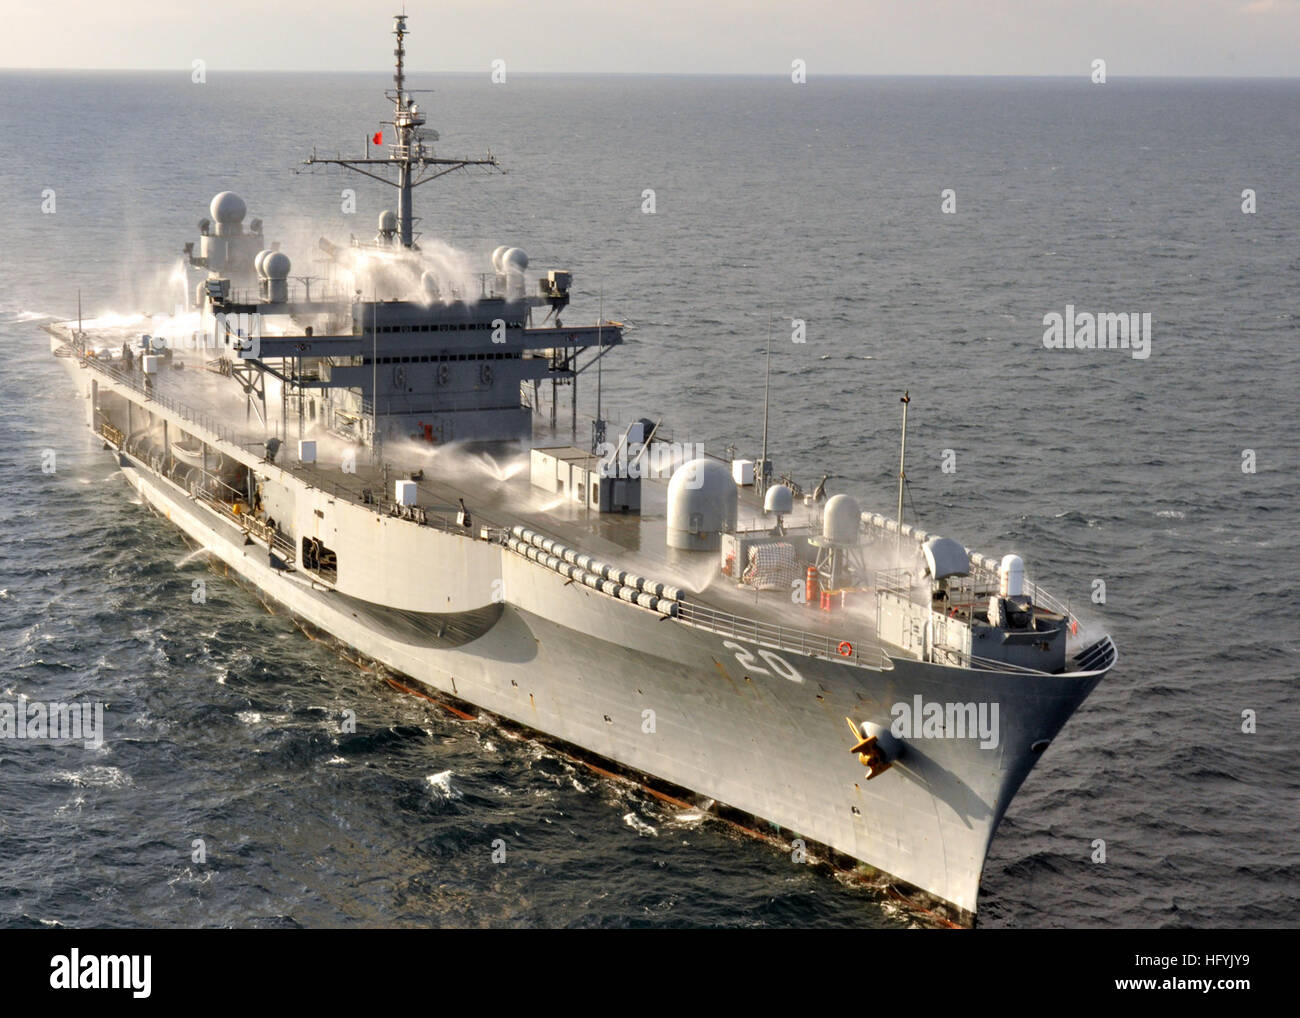 The amphibious command ship USS Mount Whitney (LCC/JCC 20) tests of the ship's salt water countermeasure wash - Stock Image